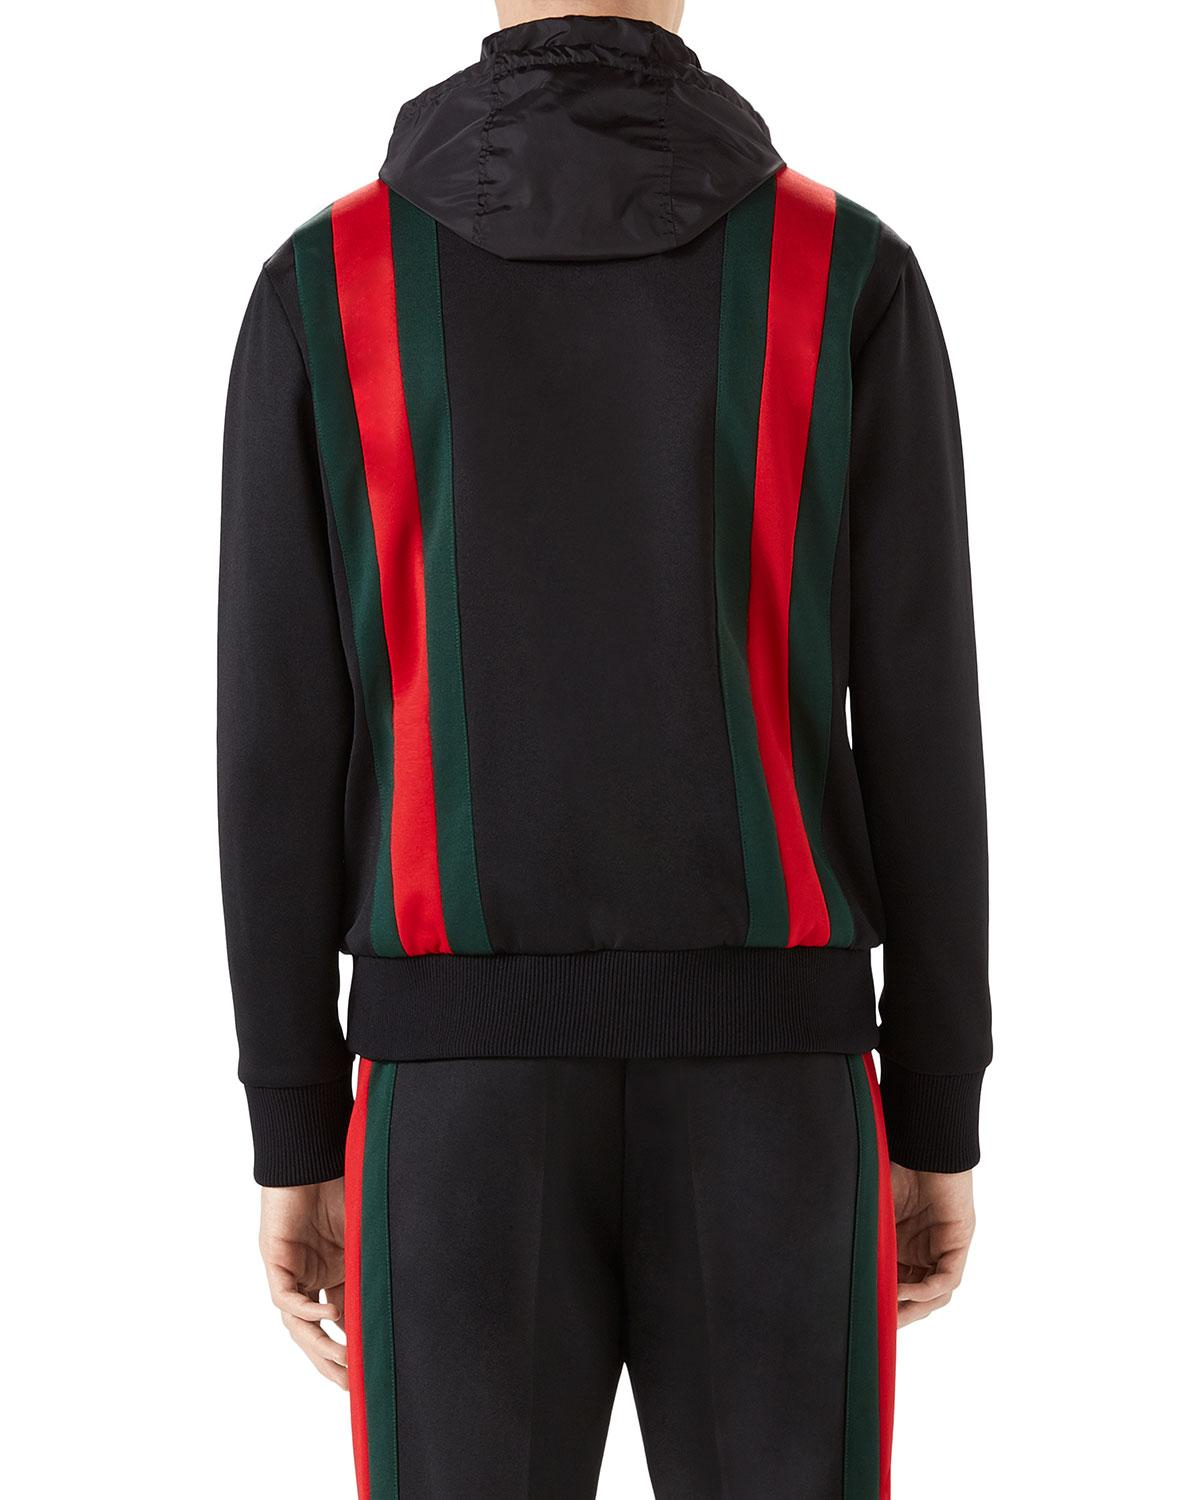 285b8ff83 Gucci Web-striped Track Jacket in Black for Men - Save 30% - Lyst